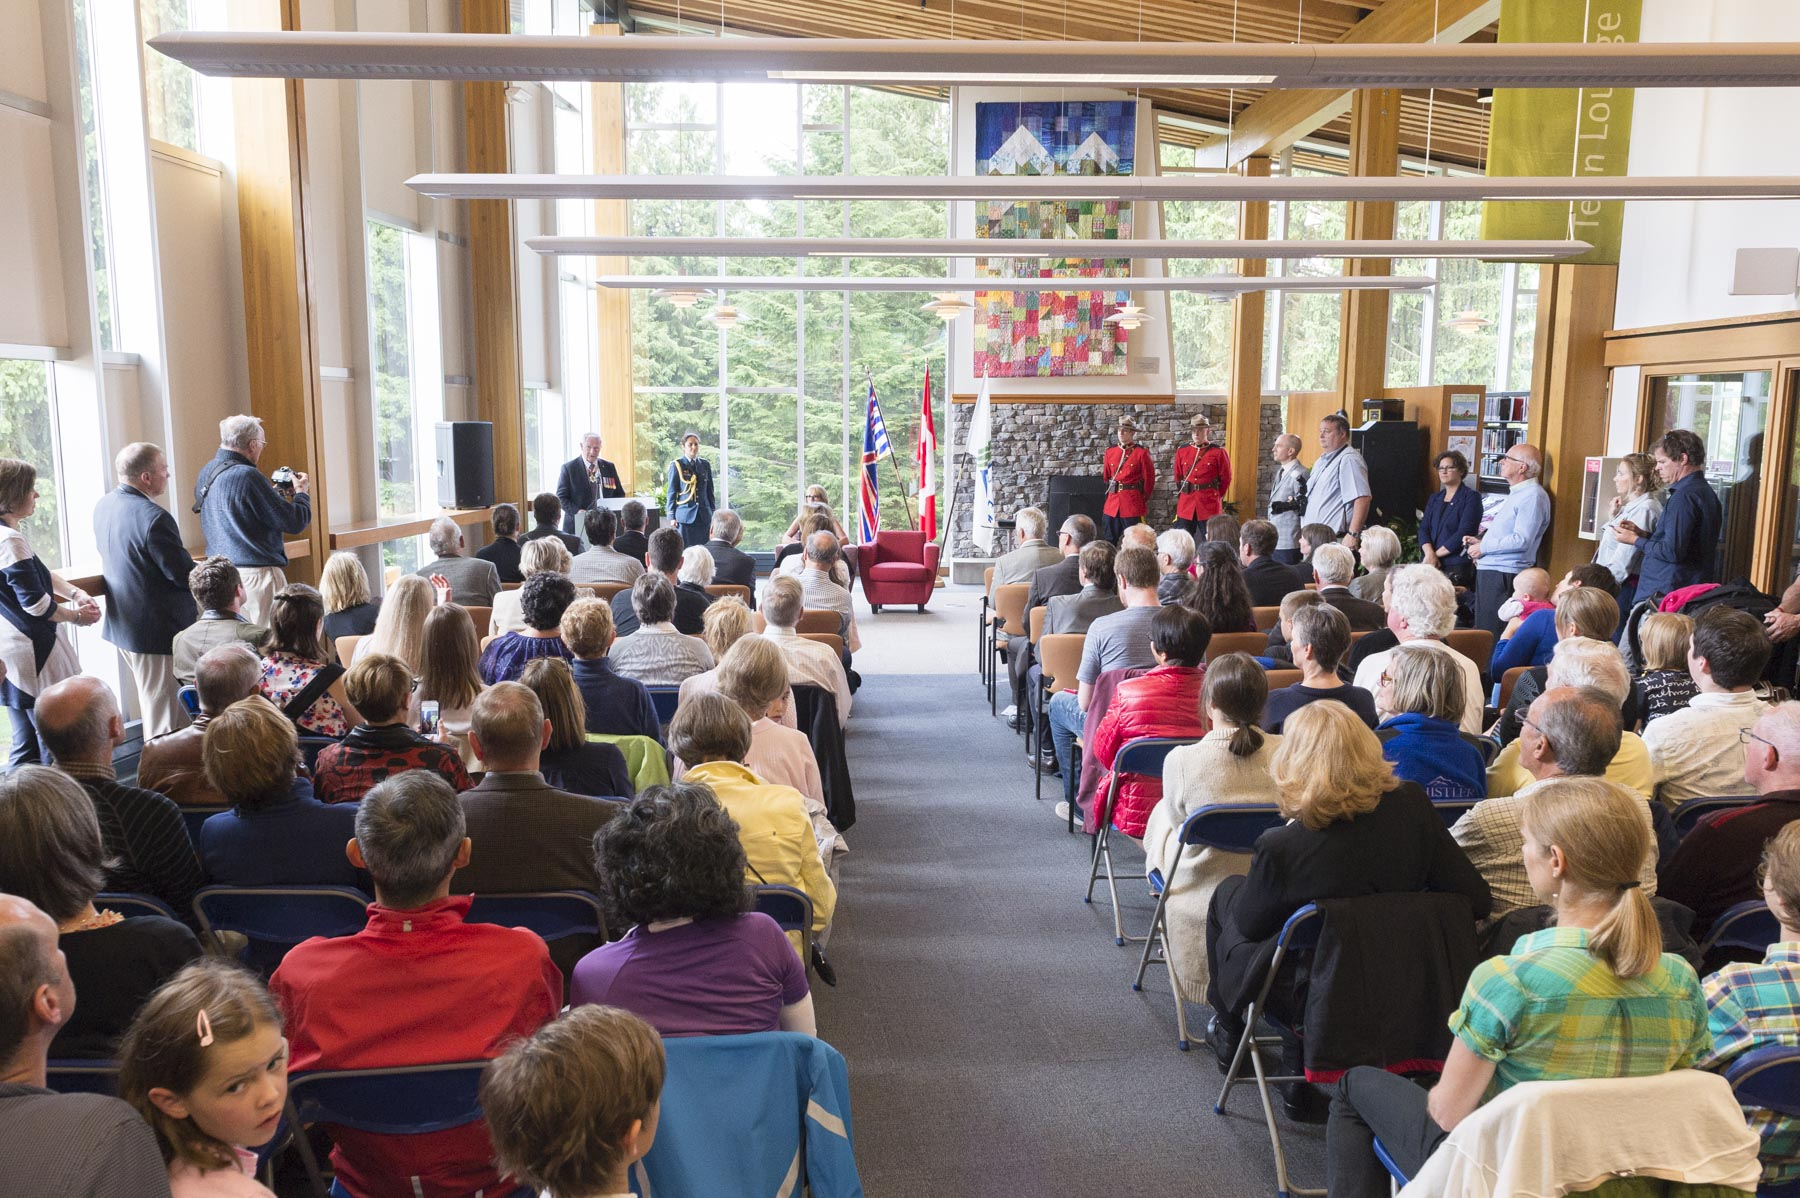 In the presence of the Mayor and city councillors, His Excellency presented the Sovereign's Medal for Volunteers to 12 exceptional volunteers from Whistler during a ceremony at the Whistler Public Library.